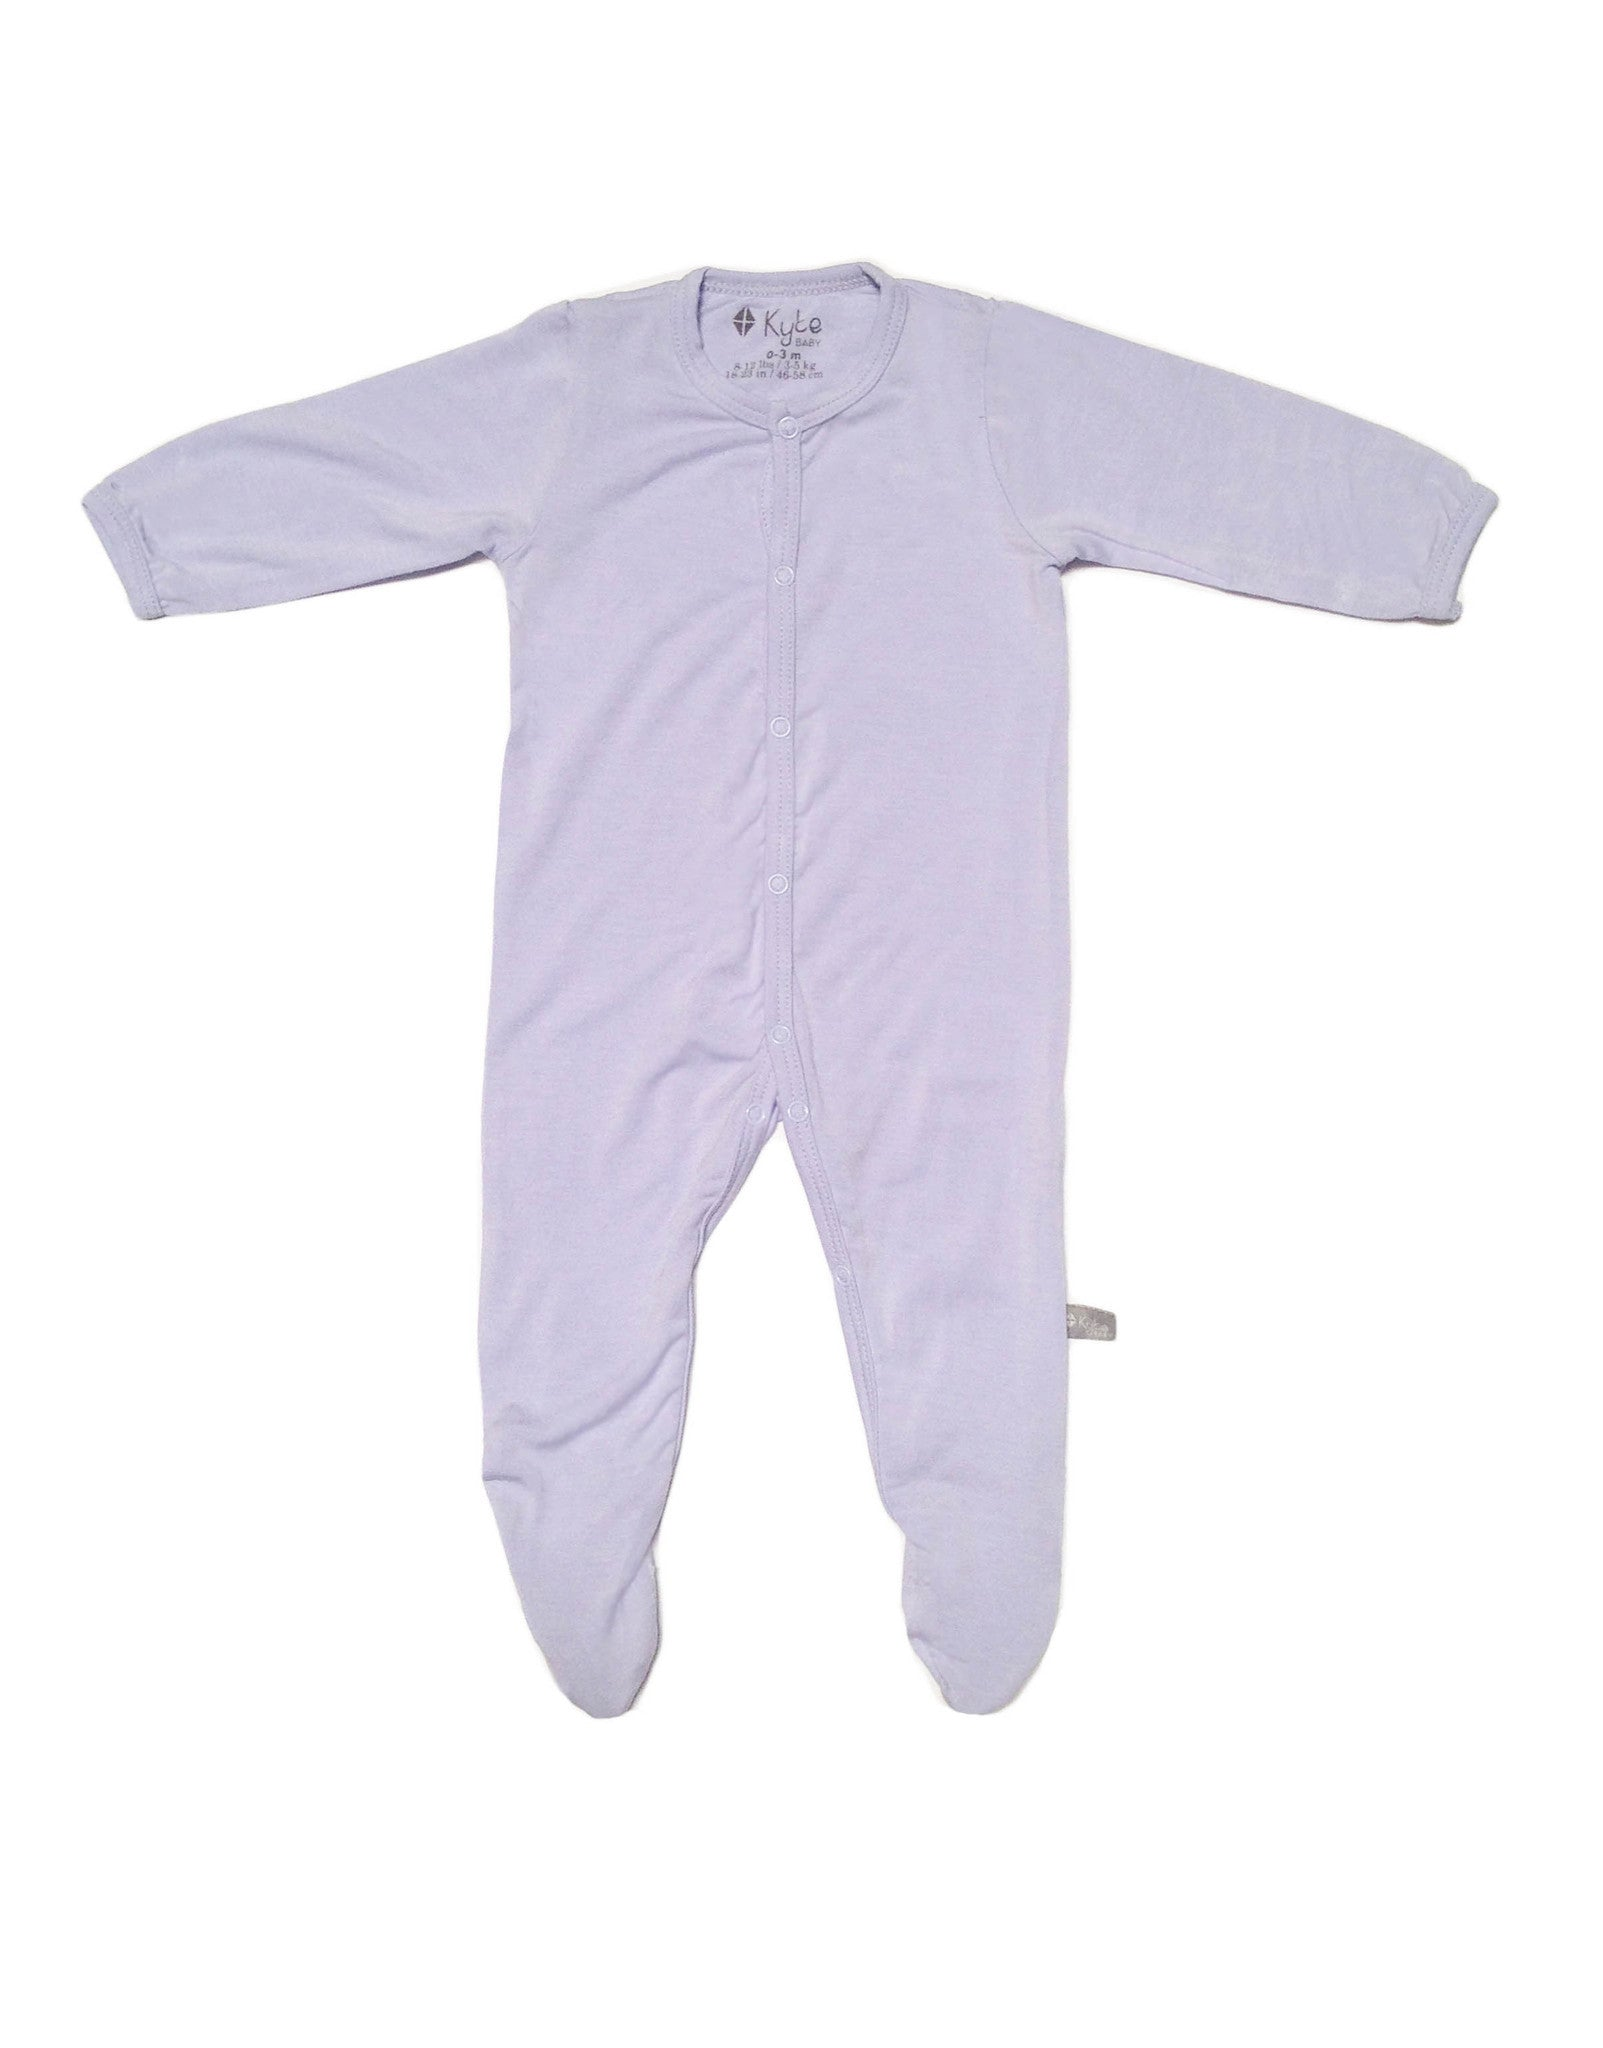 Kyte BABY Bundlers - Baby Sleeper Gowns Made of Soft Organic Bamboo ...